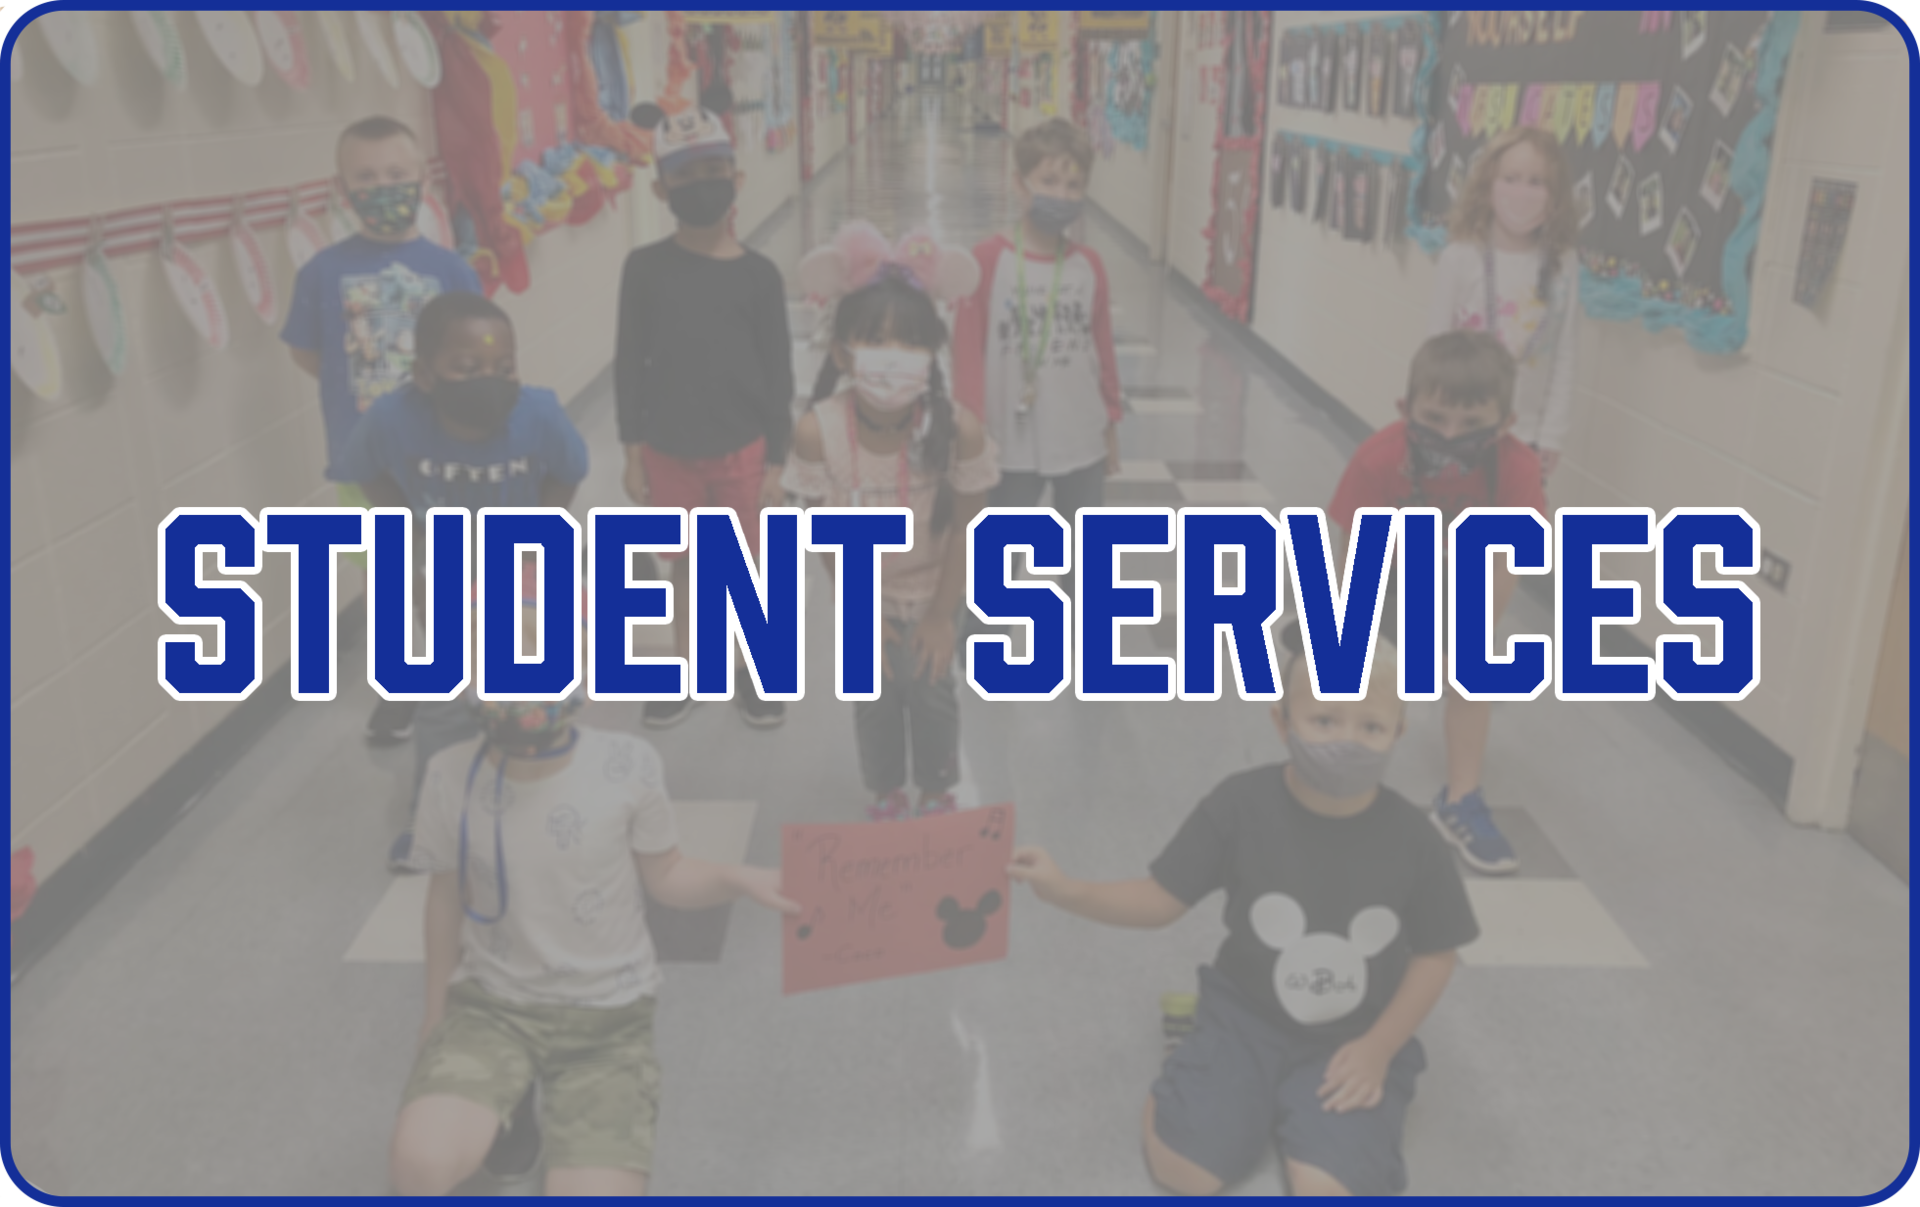 Student Services Icon